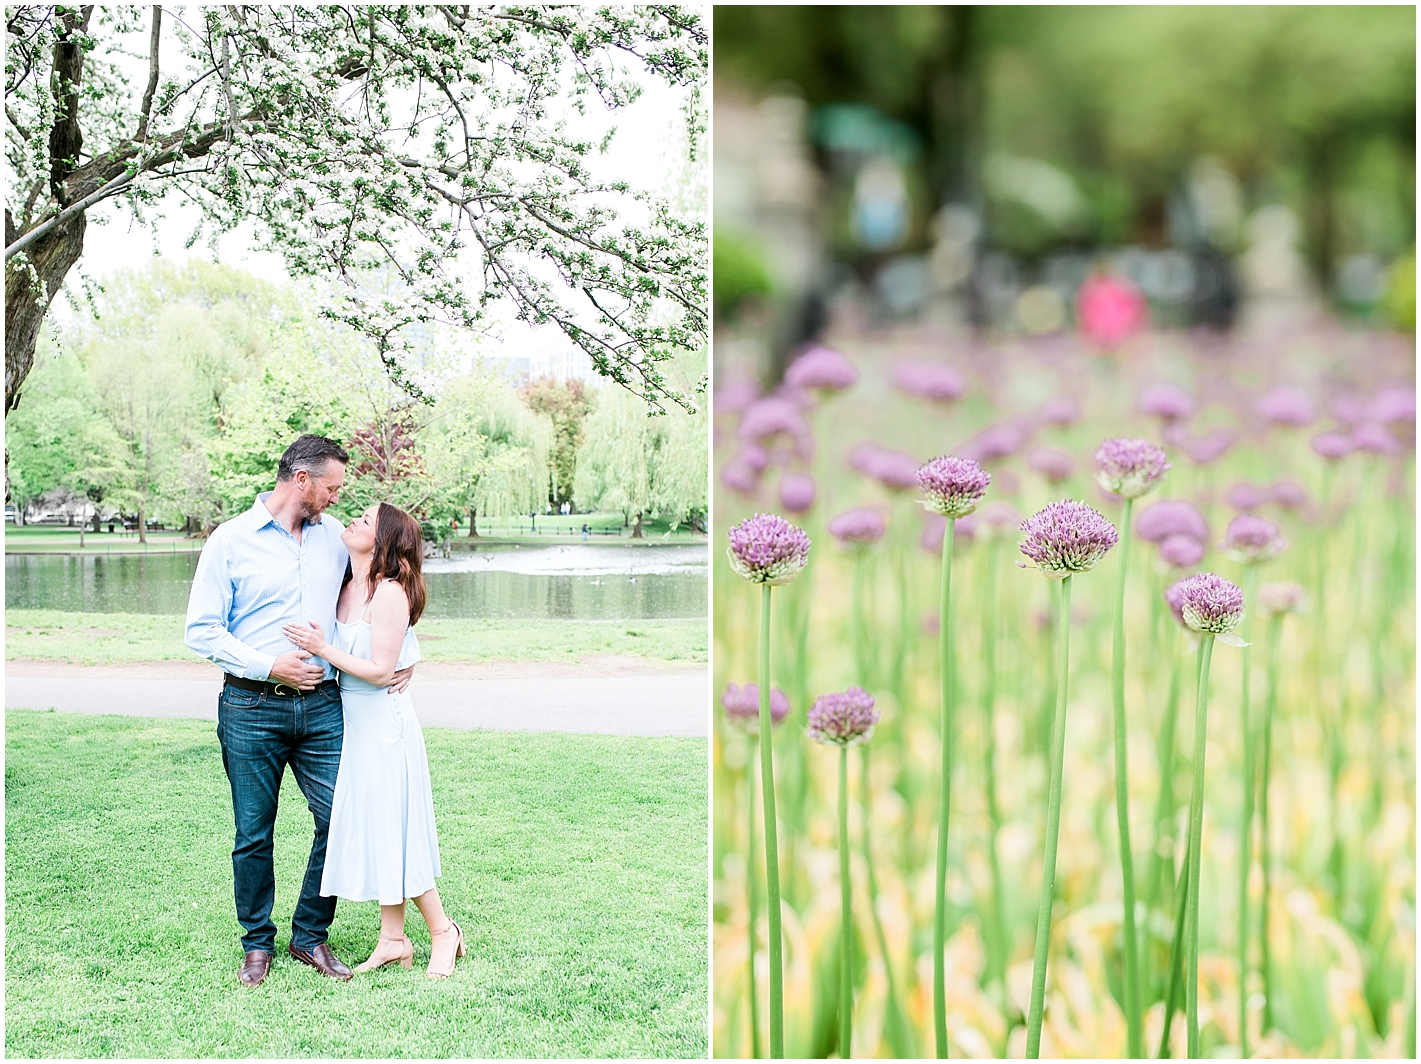 Engagement Session by Alyssa Parker Photography